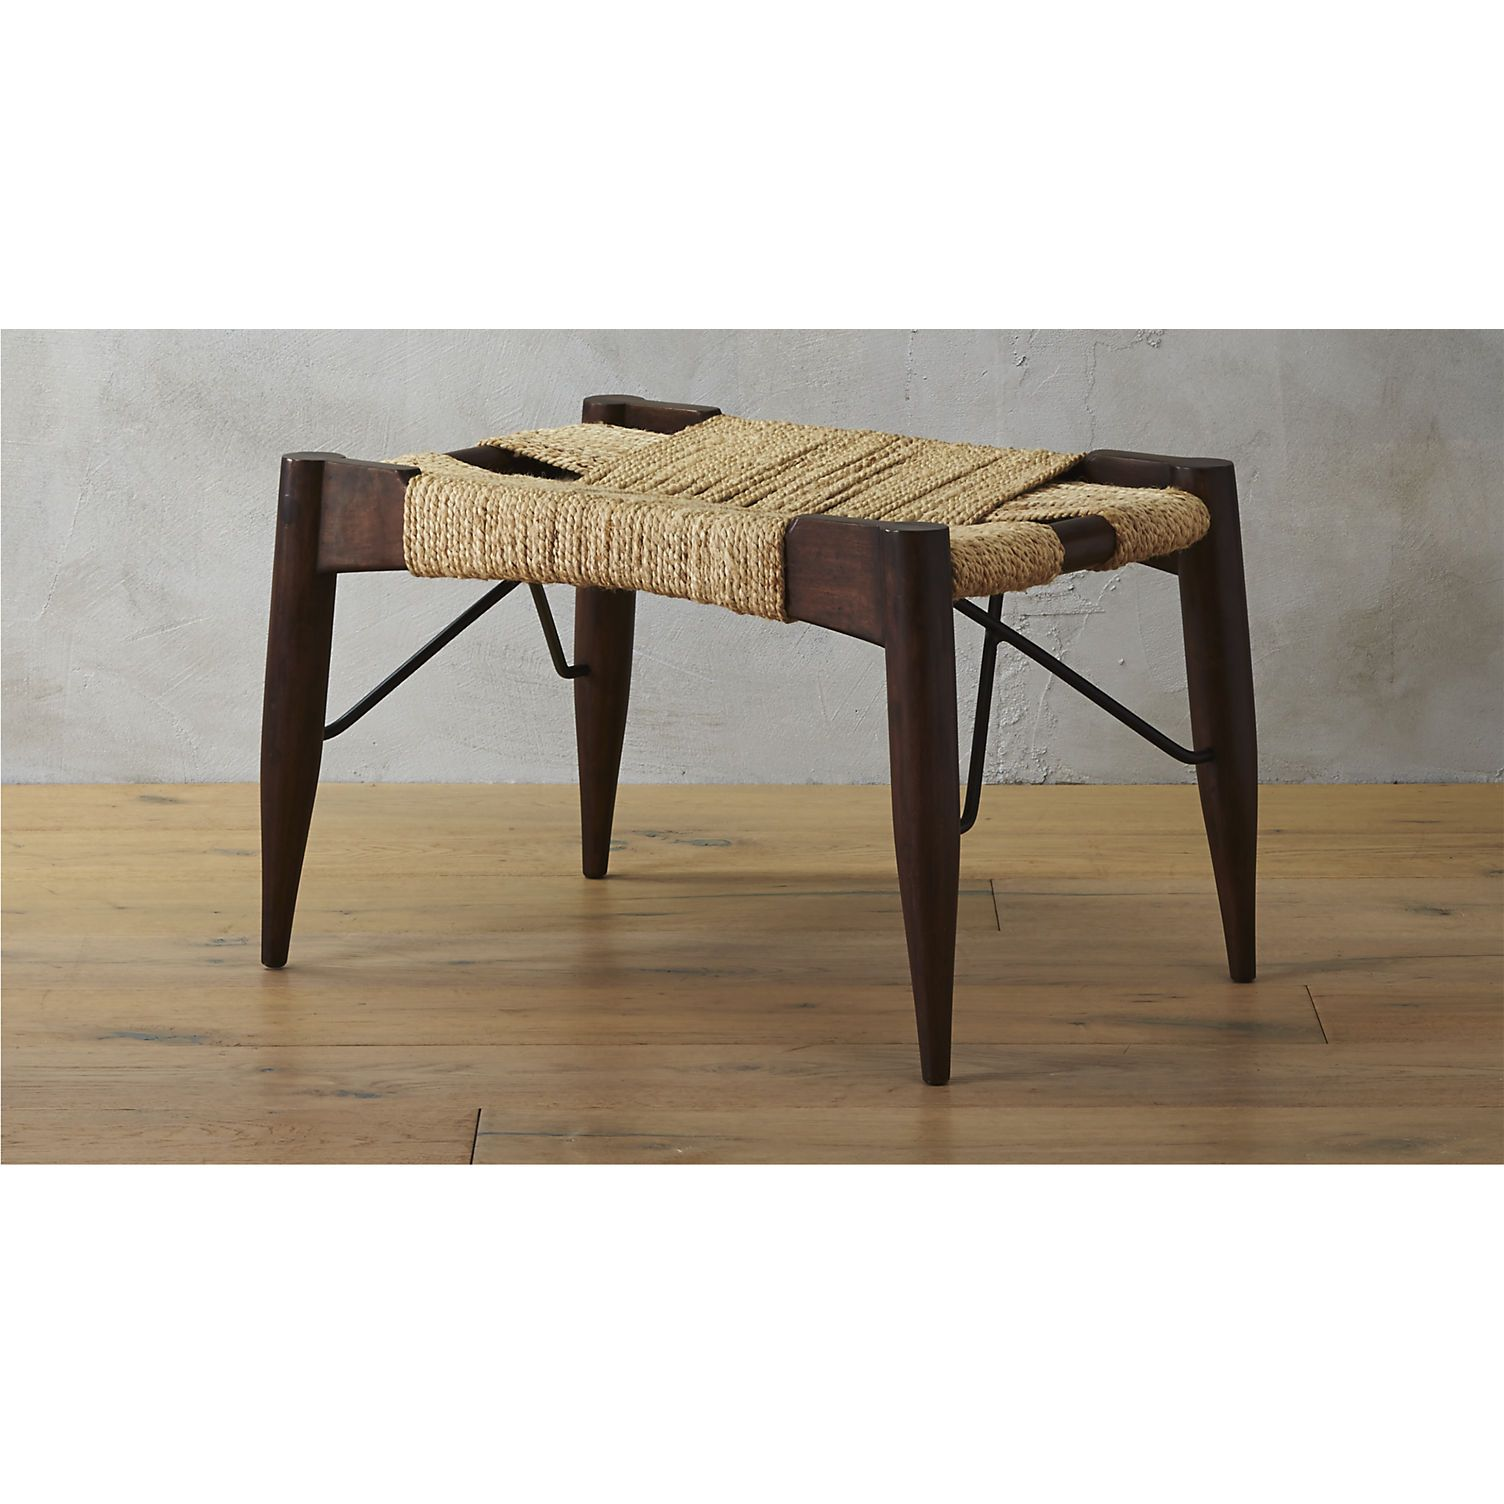 Wrap Bench wrap small bench | small bench, open frame and acacia wood